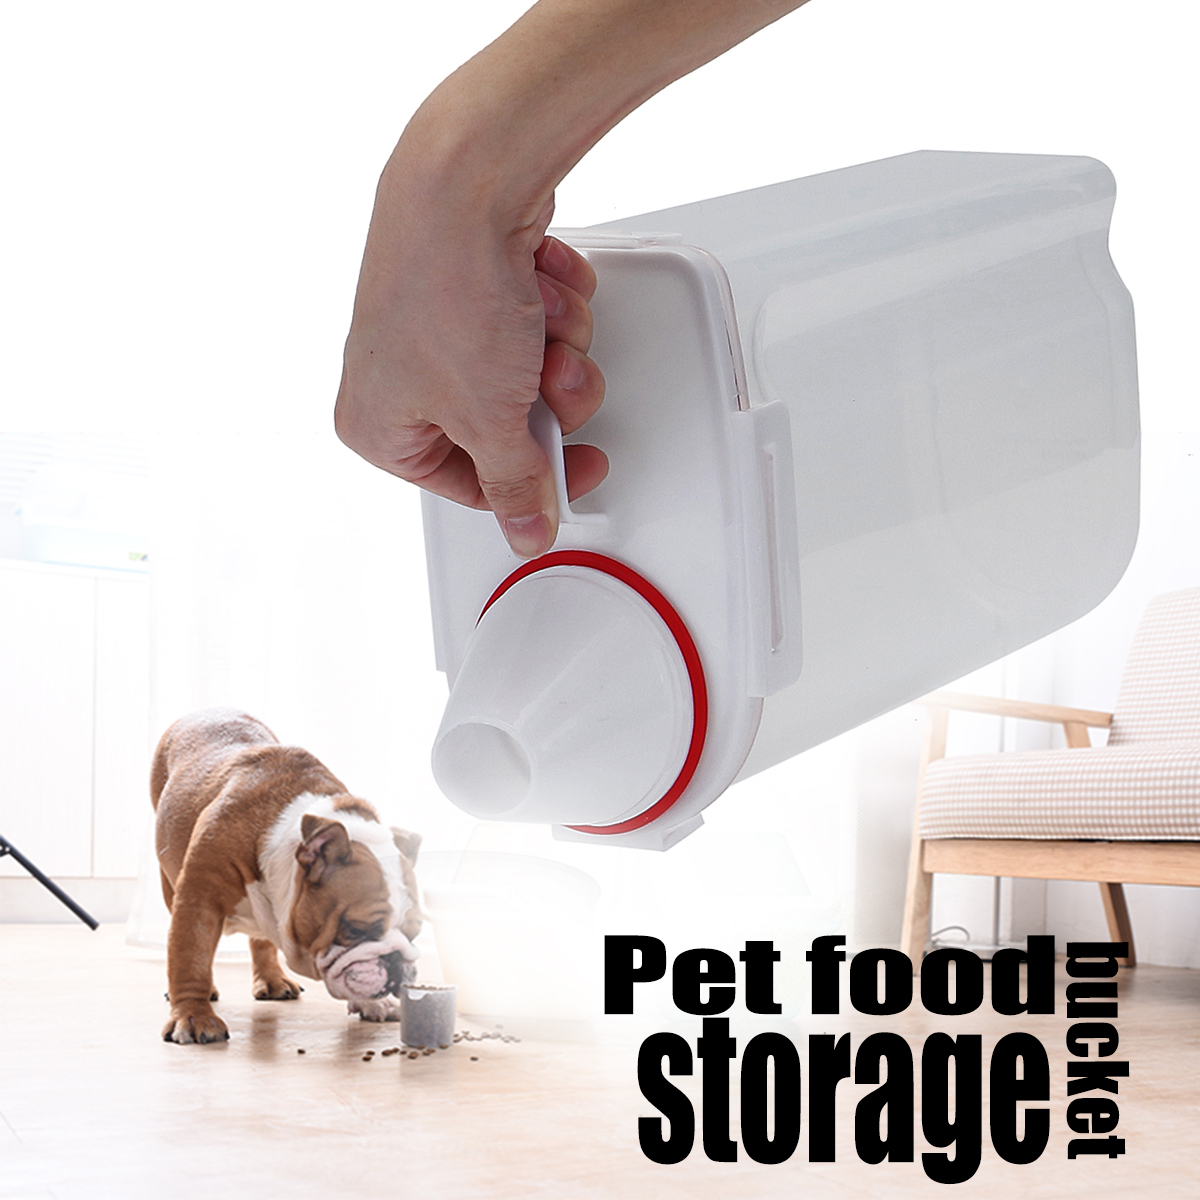 Pet Dog Feeder Cat Animal Food Storage Container Dry Dispenser Cup Large Capacity With Measuring Cup for Cats and Dogs